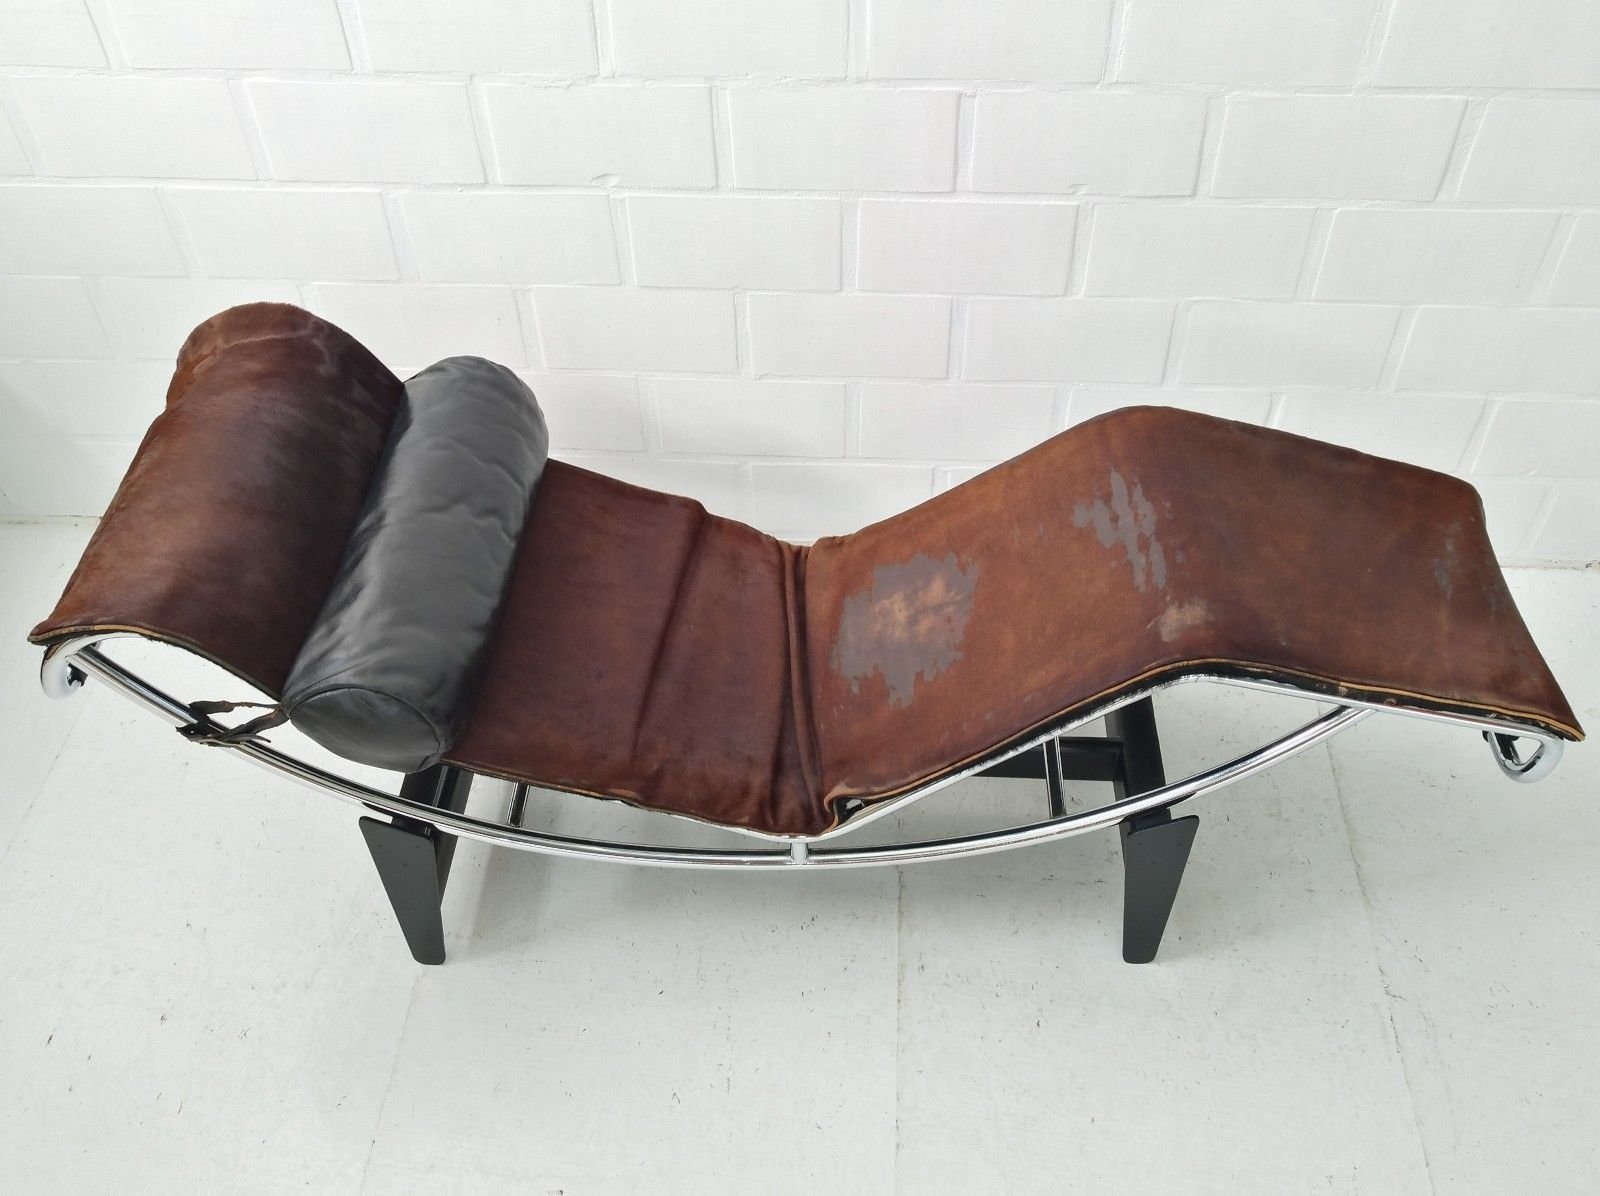 lc4 chaise longue by le corbusier charlotte perriand. Black Bedroom Furniture Sets. Home Design Ideas